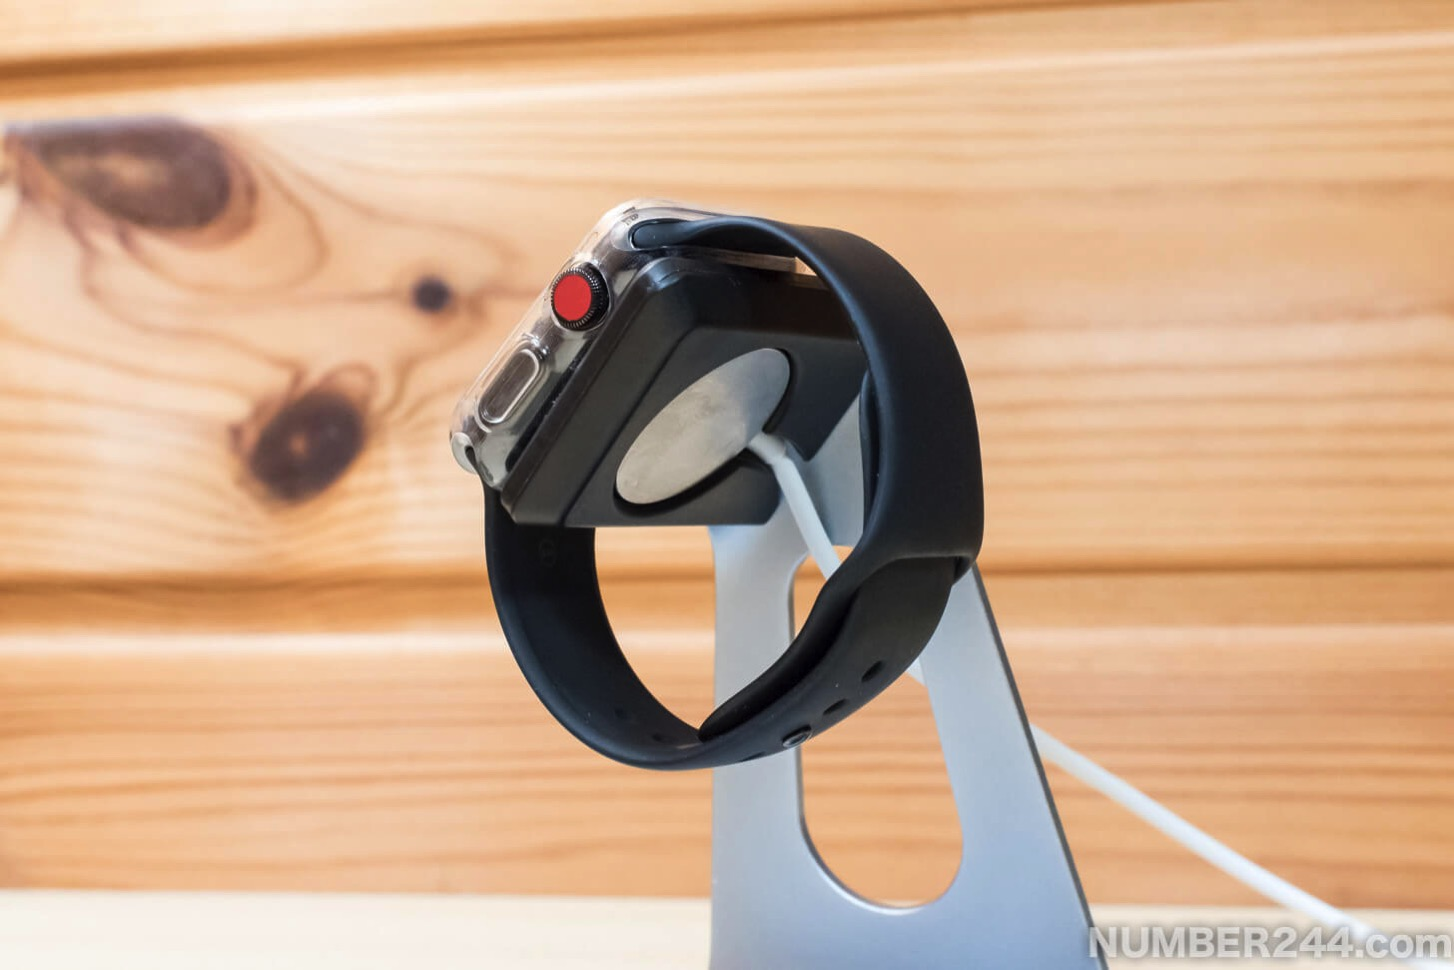 Moobom Apple Watch stand8